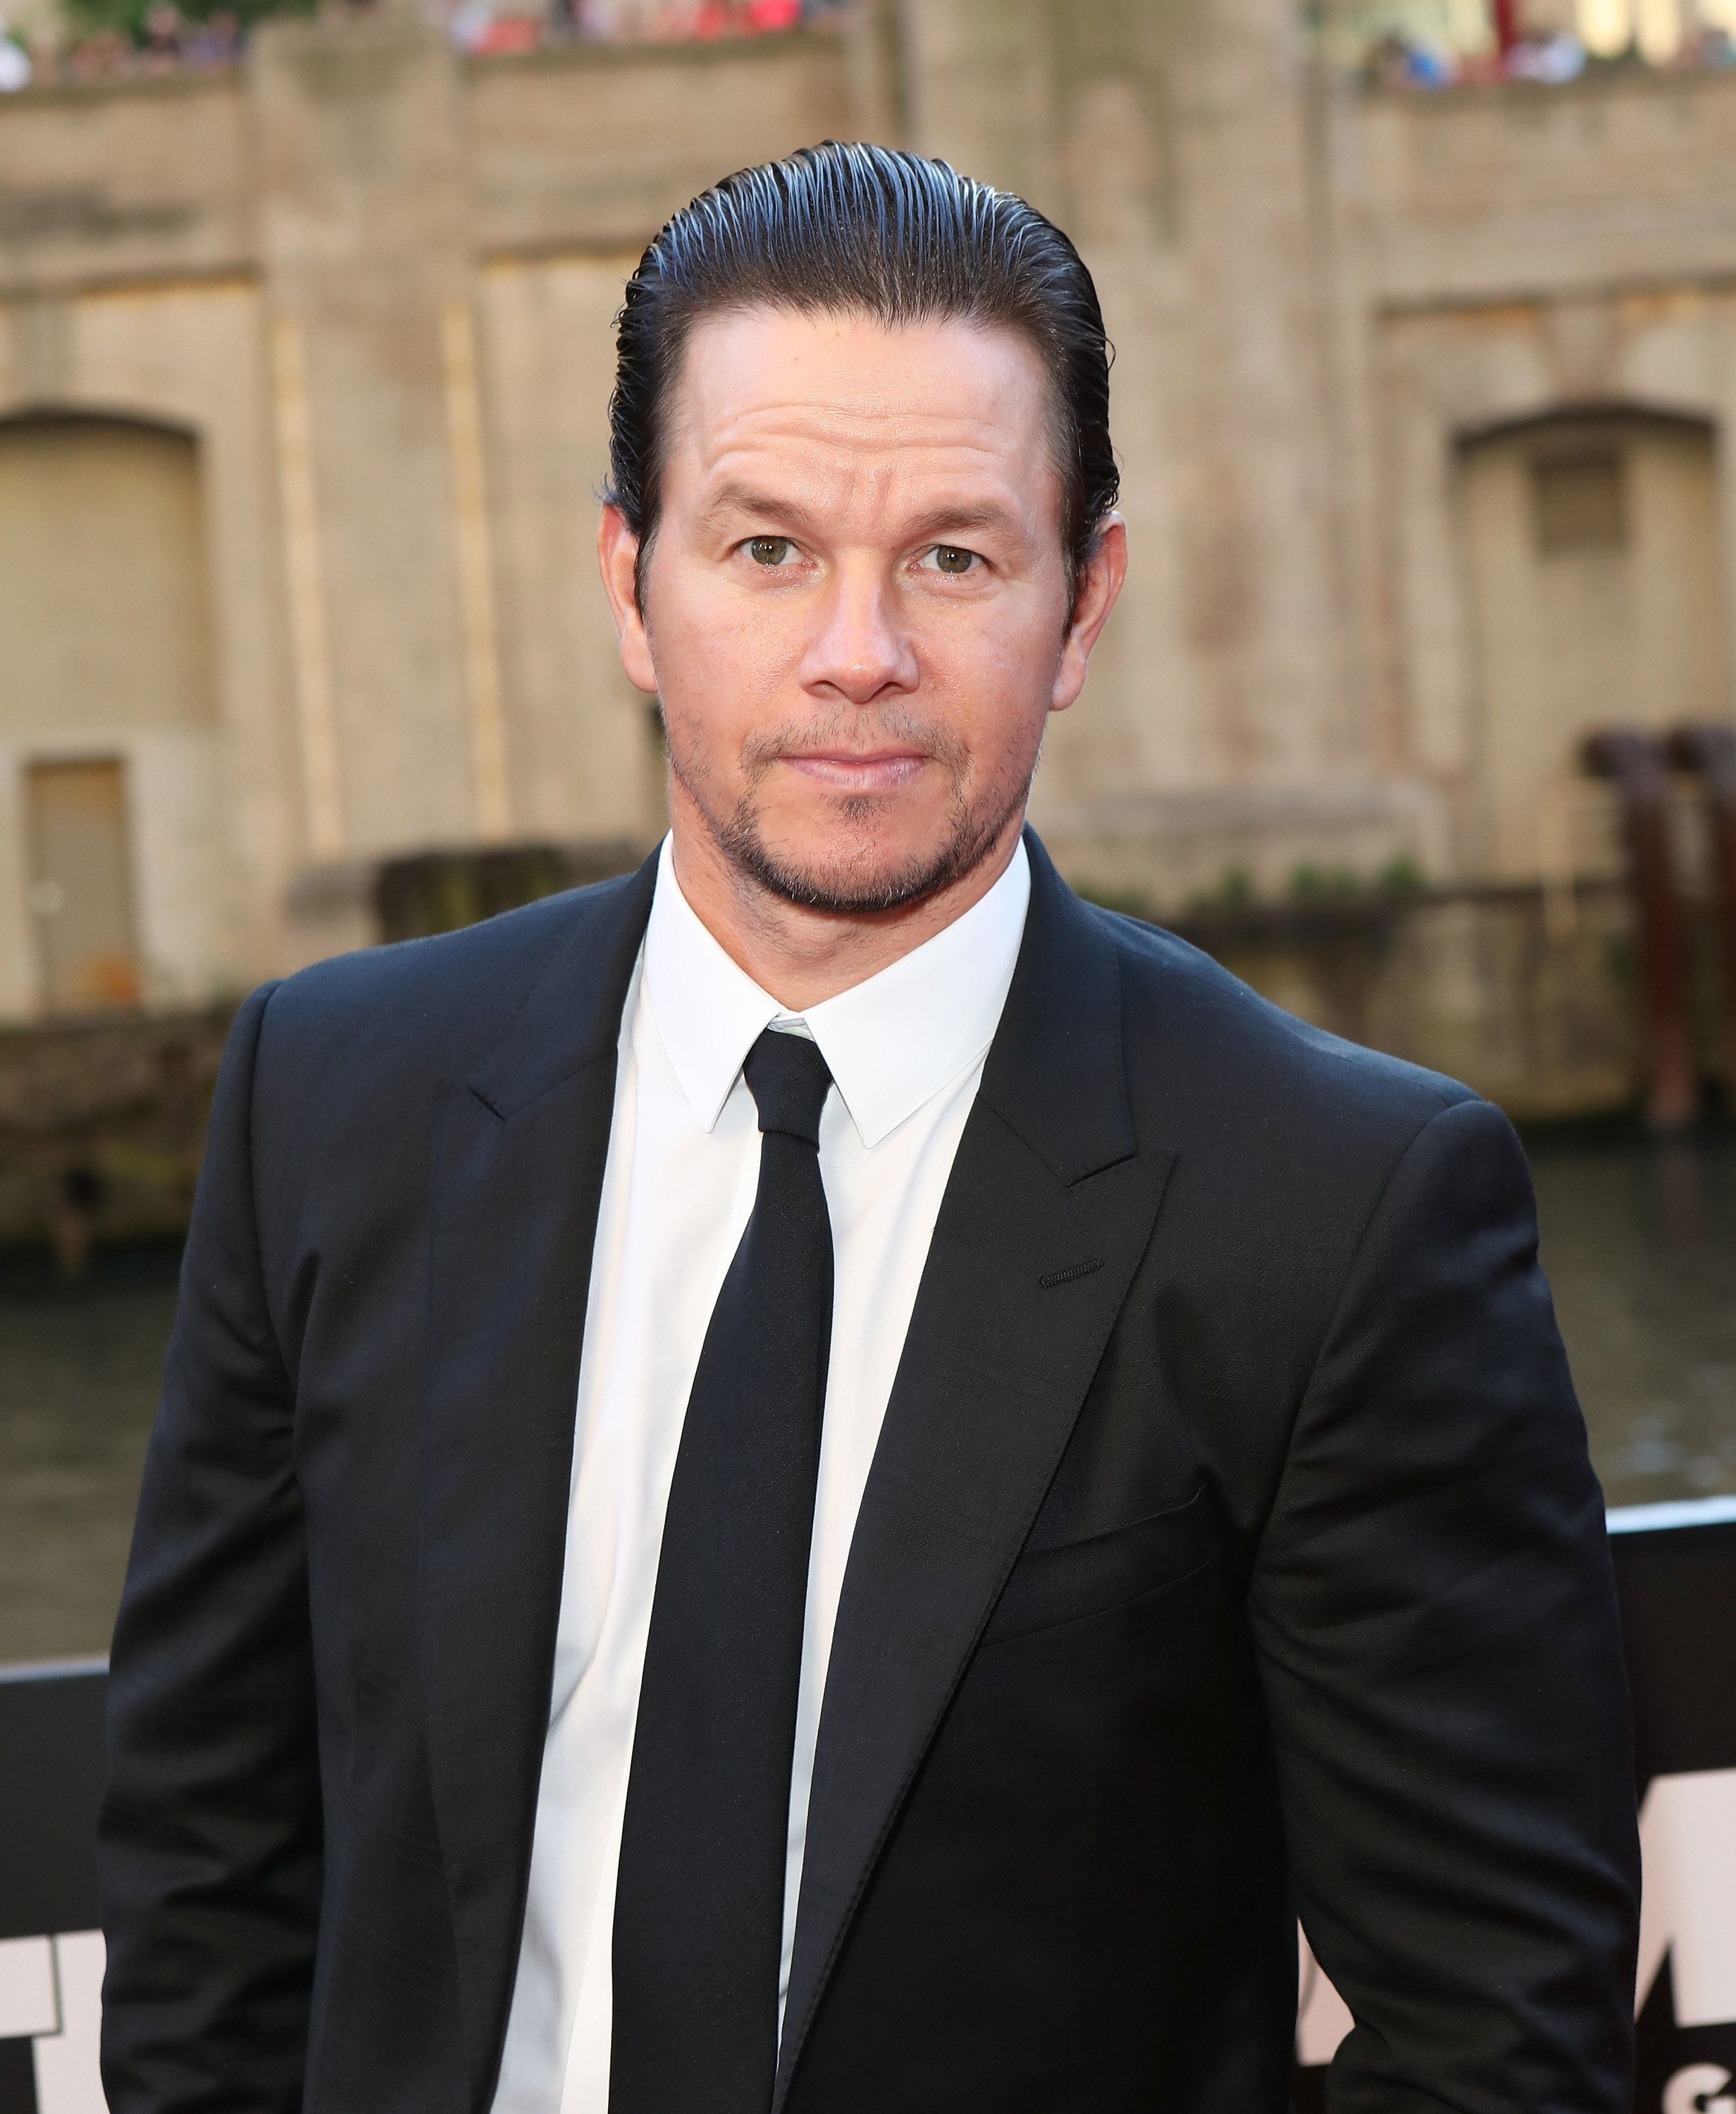 CHICAGO, IL - JUNE 20:  Mark Wahlberg arrives for the premiere of 'Transformers: The Last Knight' at Civic Opera Building on June 20, 2017 in Chicago, Illinois.  (Photo by Gabriel Grams/FilmMagic)